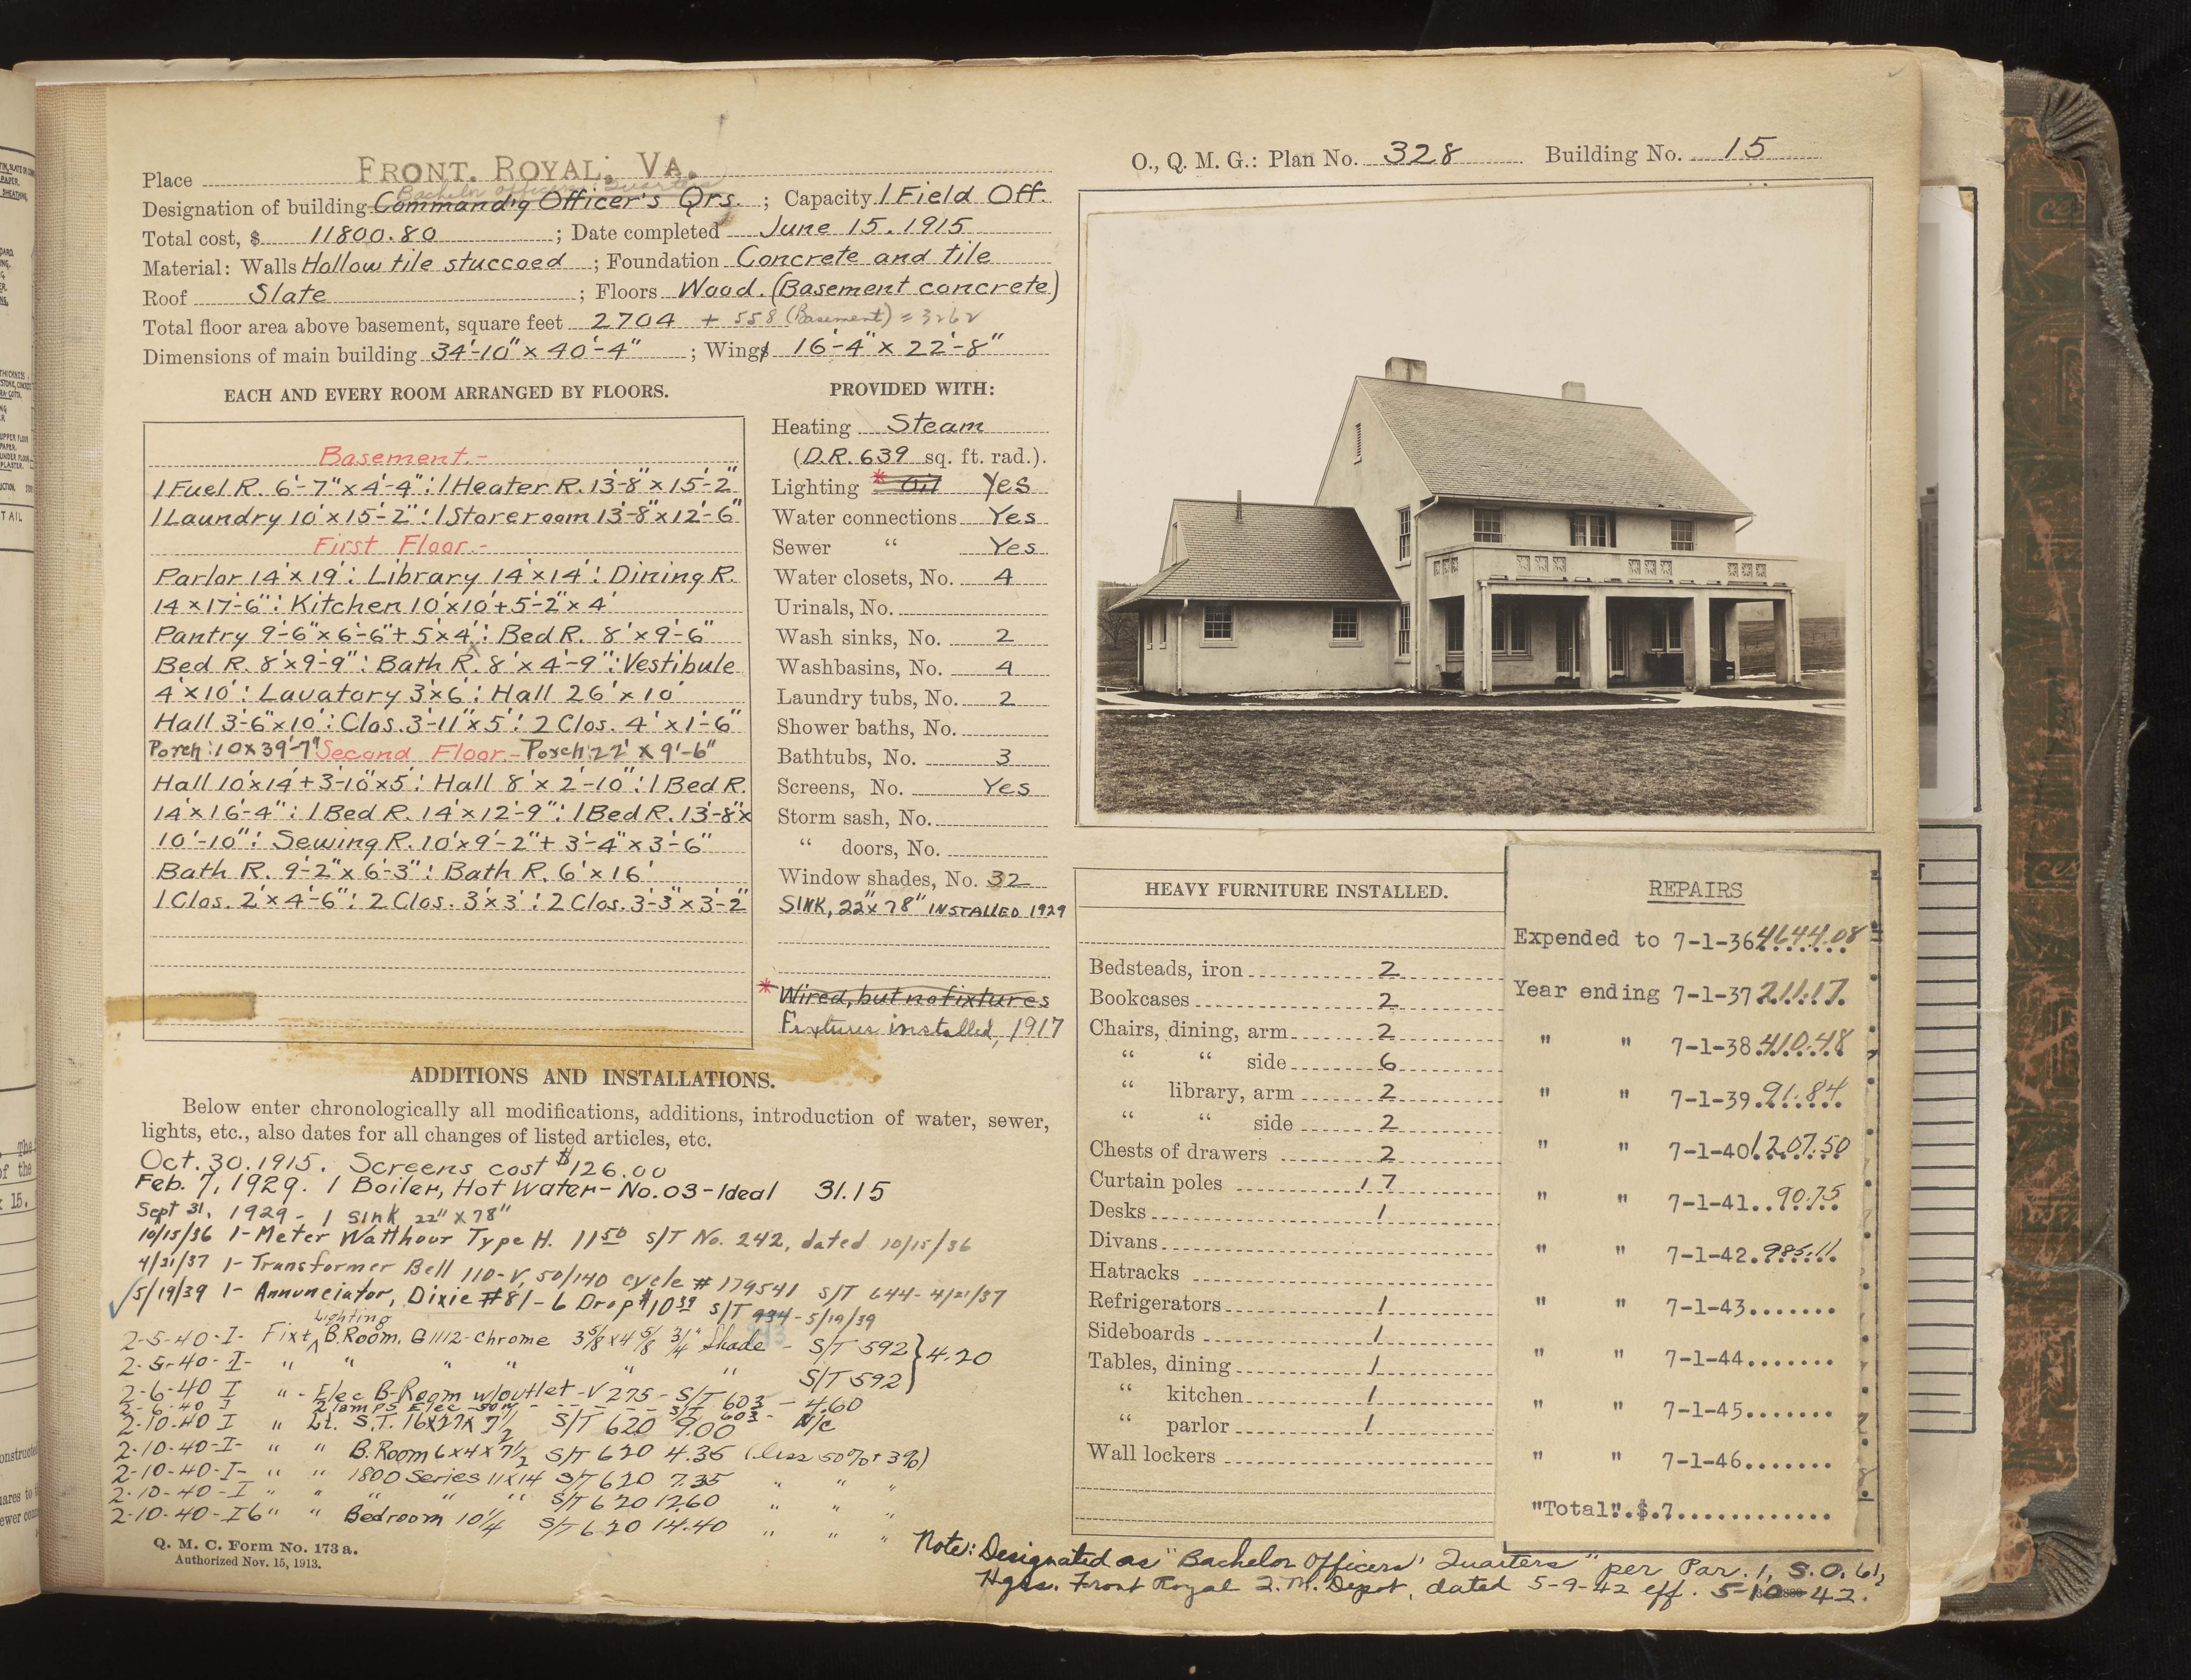 Page of book with image of building and written information about it.